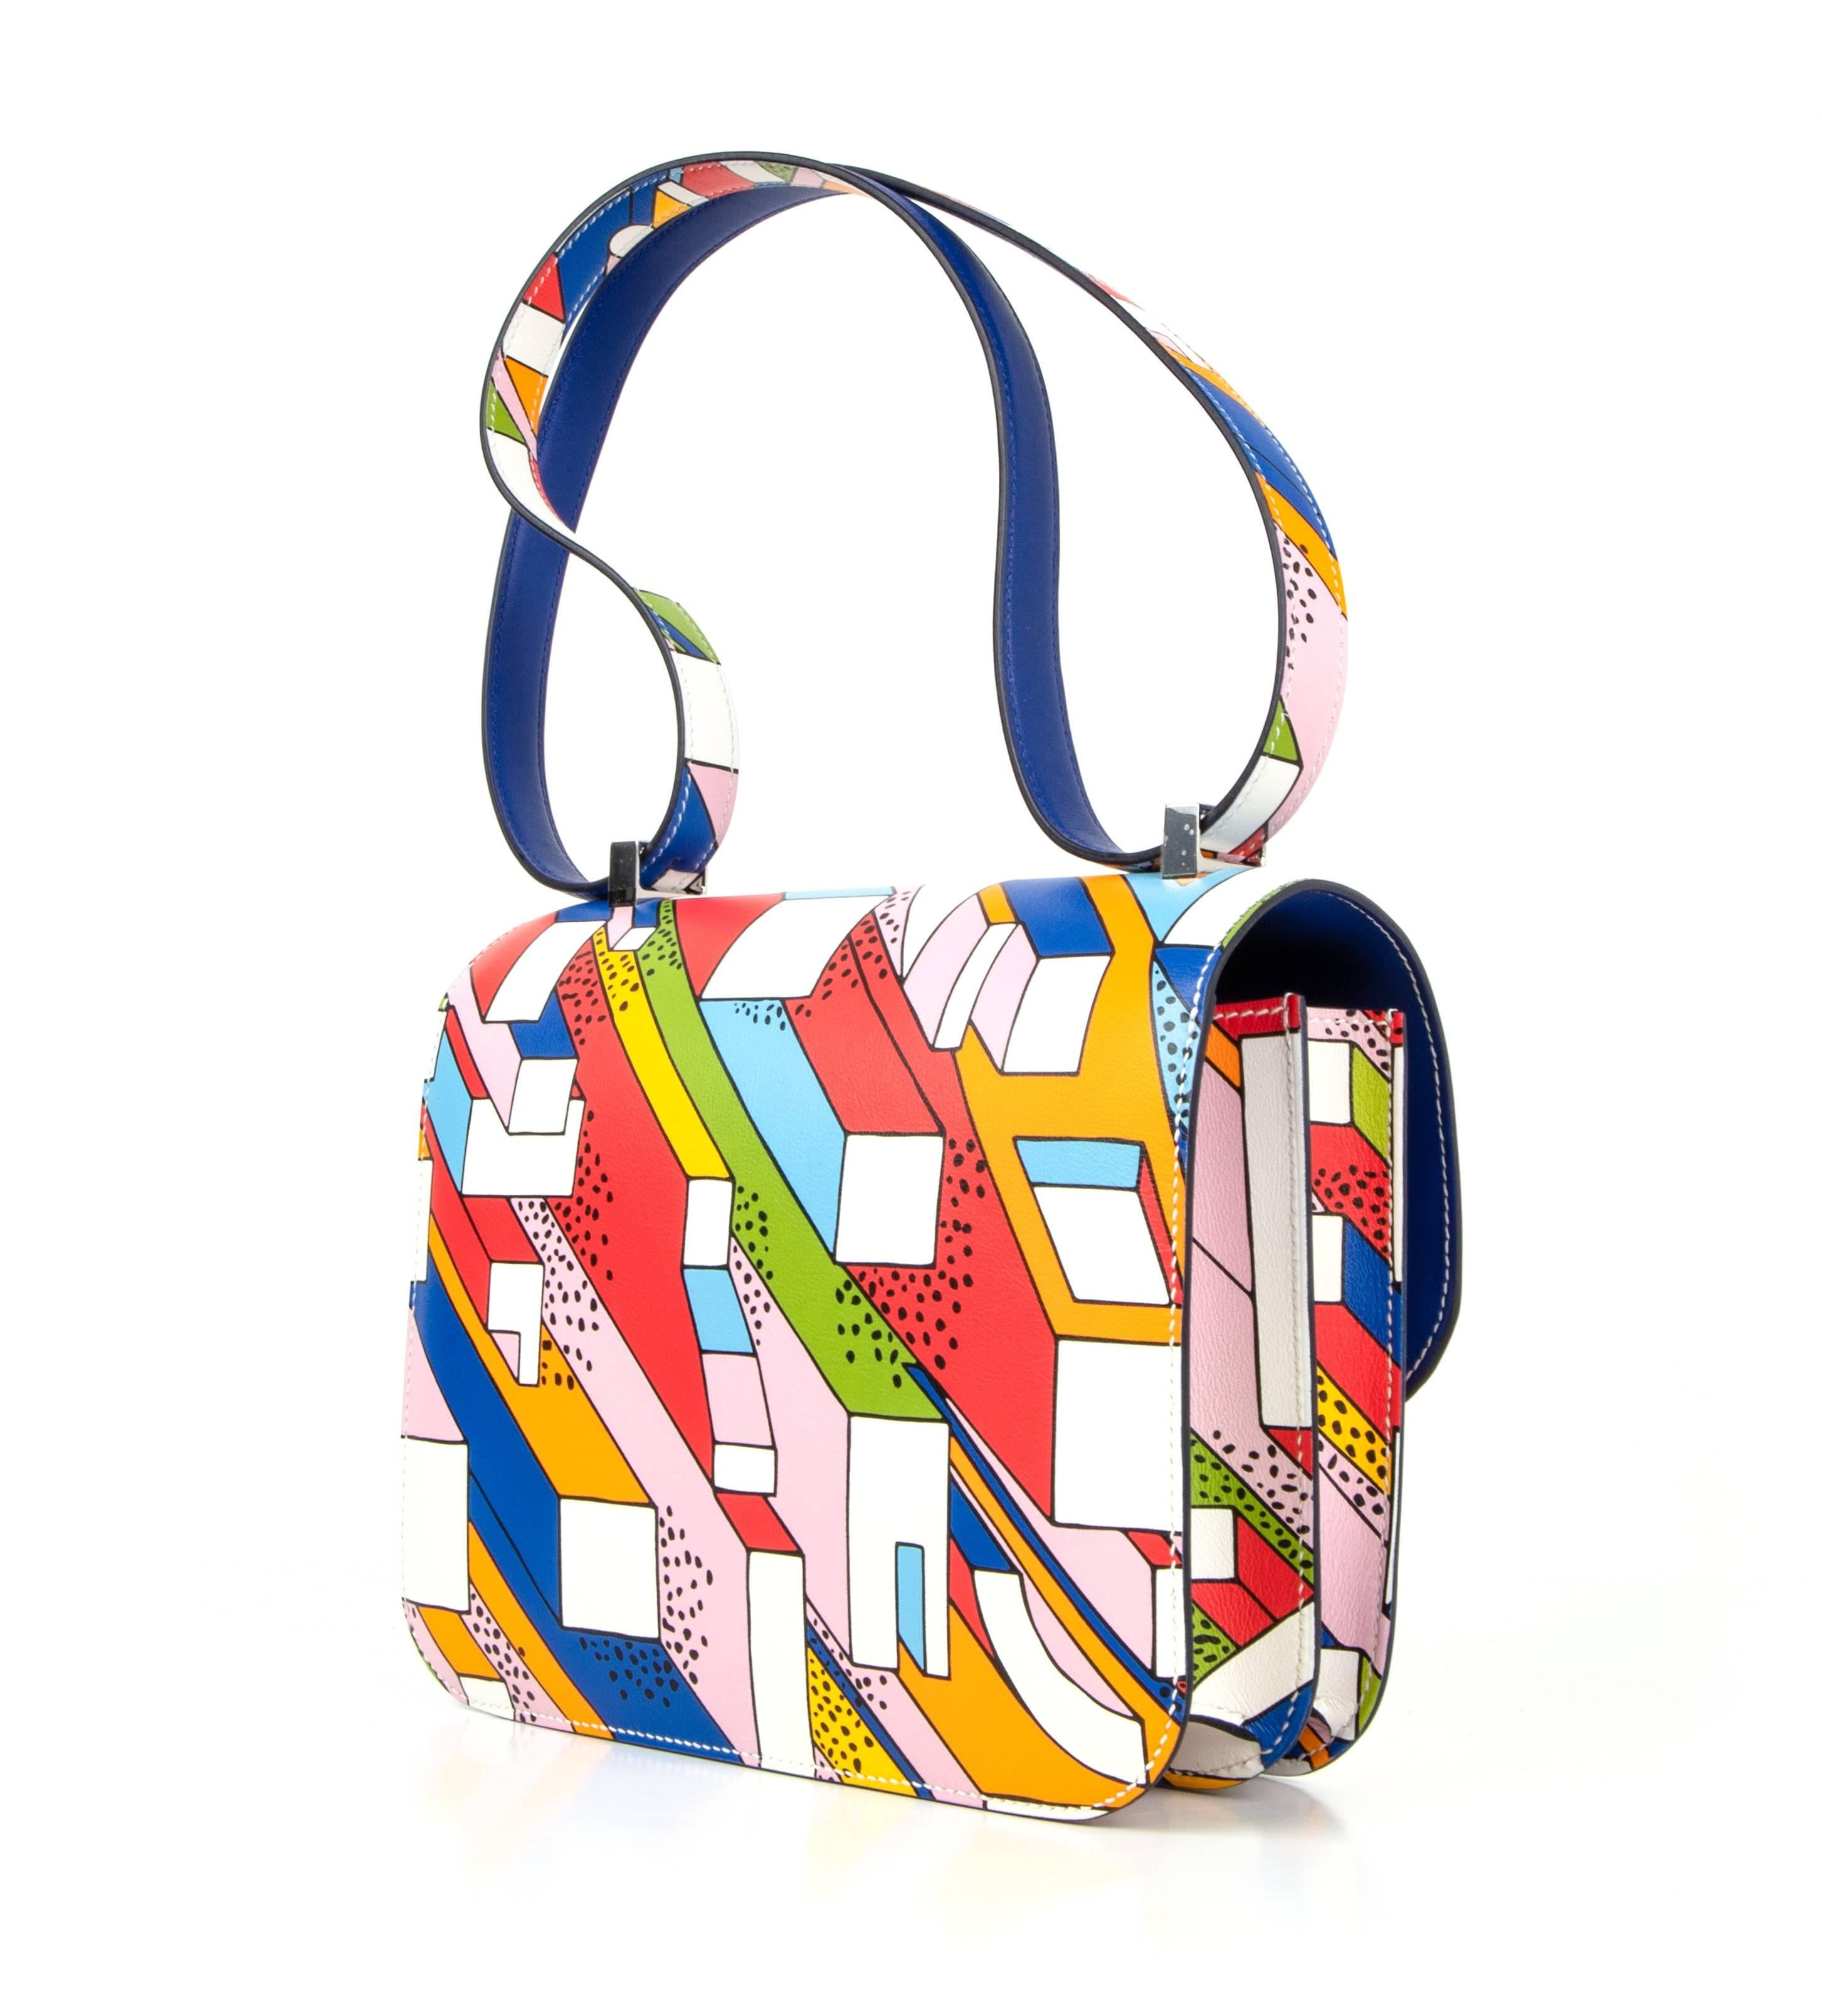 678ca7be0d1b ... cheap hermes constance 24 bag on a summers day ltd ed nigel peake  collaboration new for